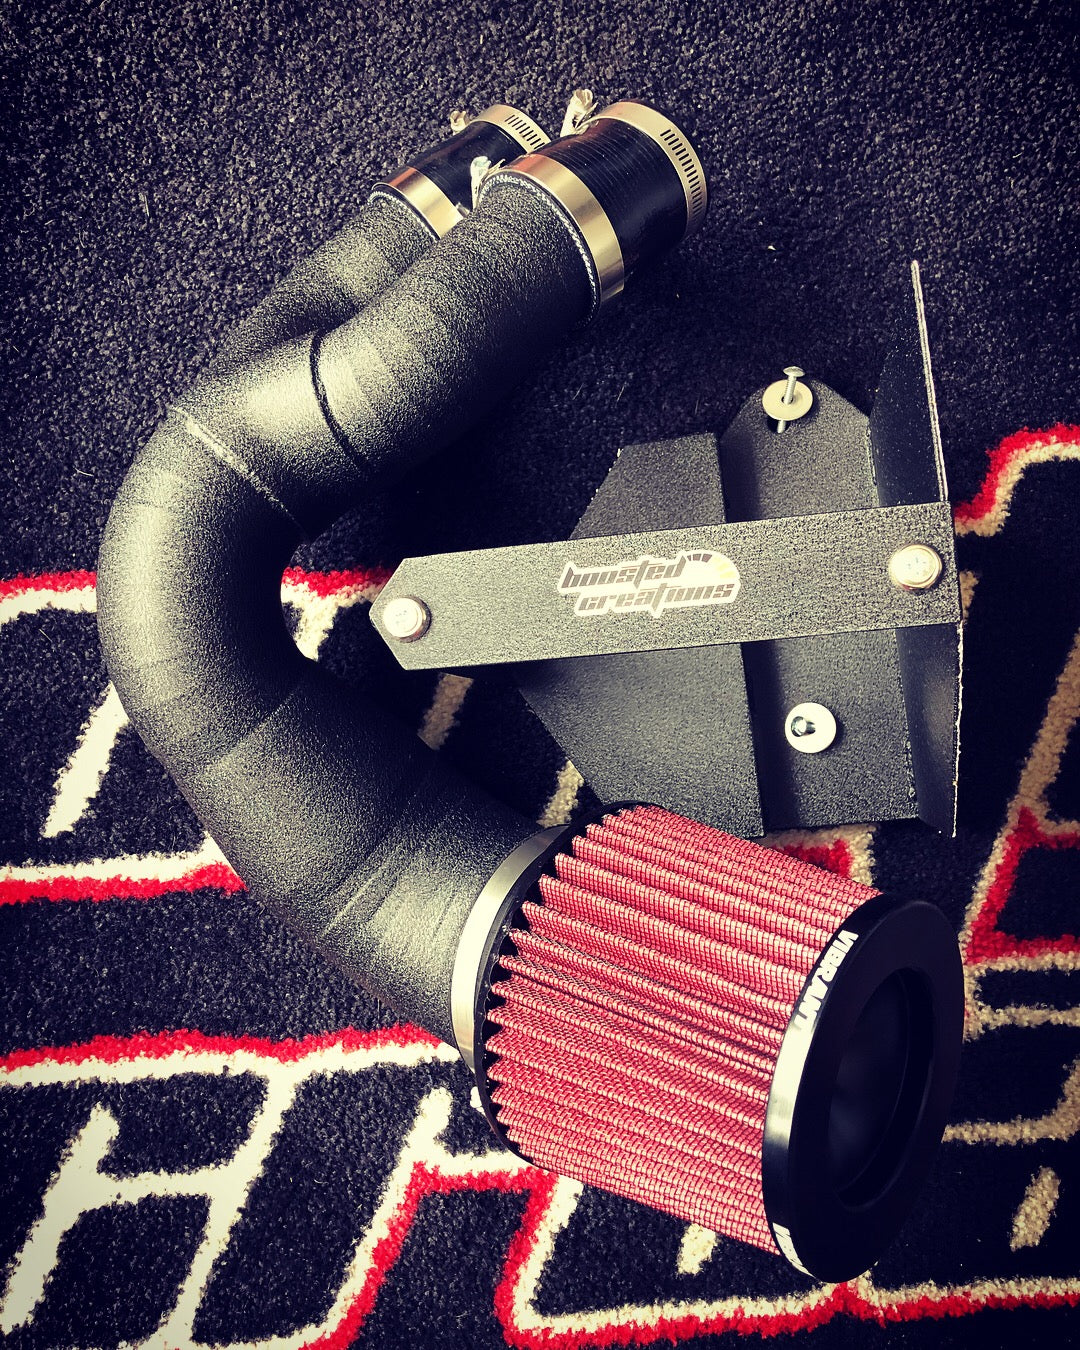 Boosted Creations Audi S6/S7 Intake System